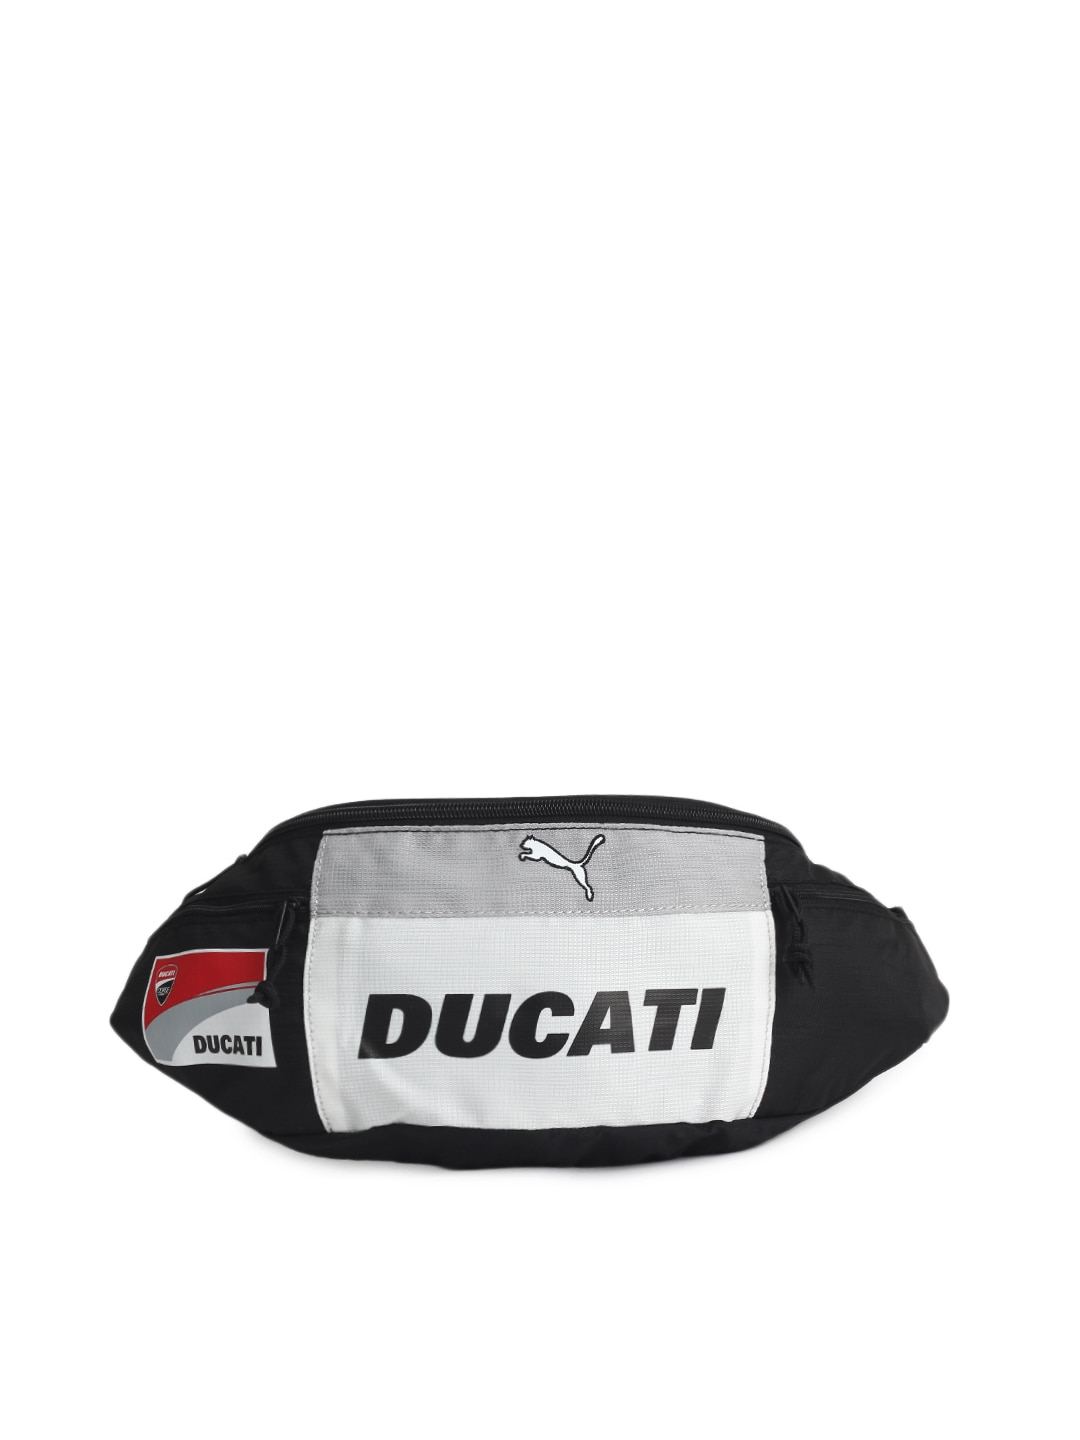 20beaa97d91d Puma 7010401 Men Black Ducati Waist Bag - Best Price in India ...